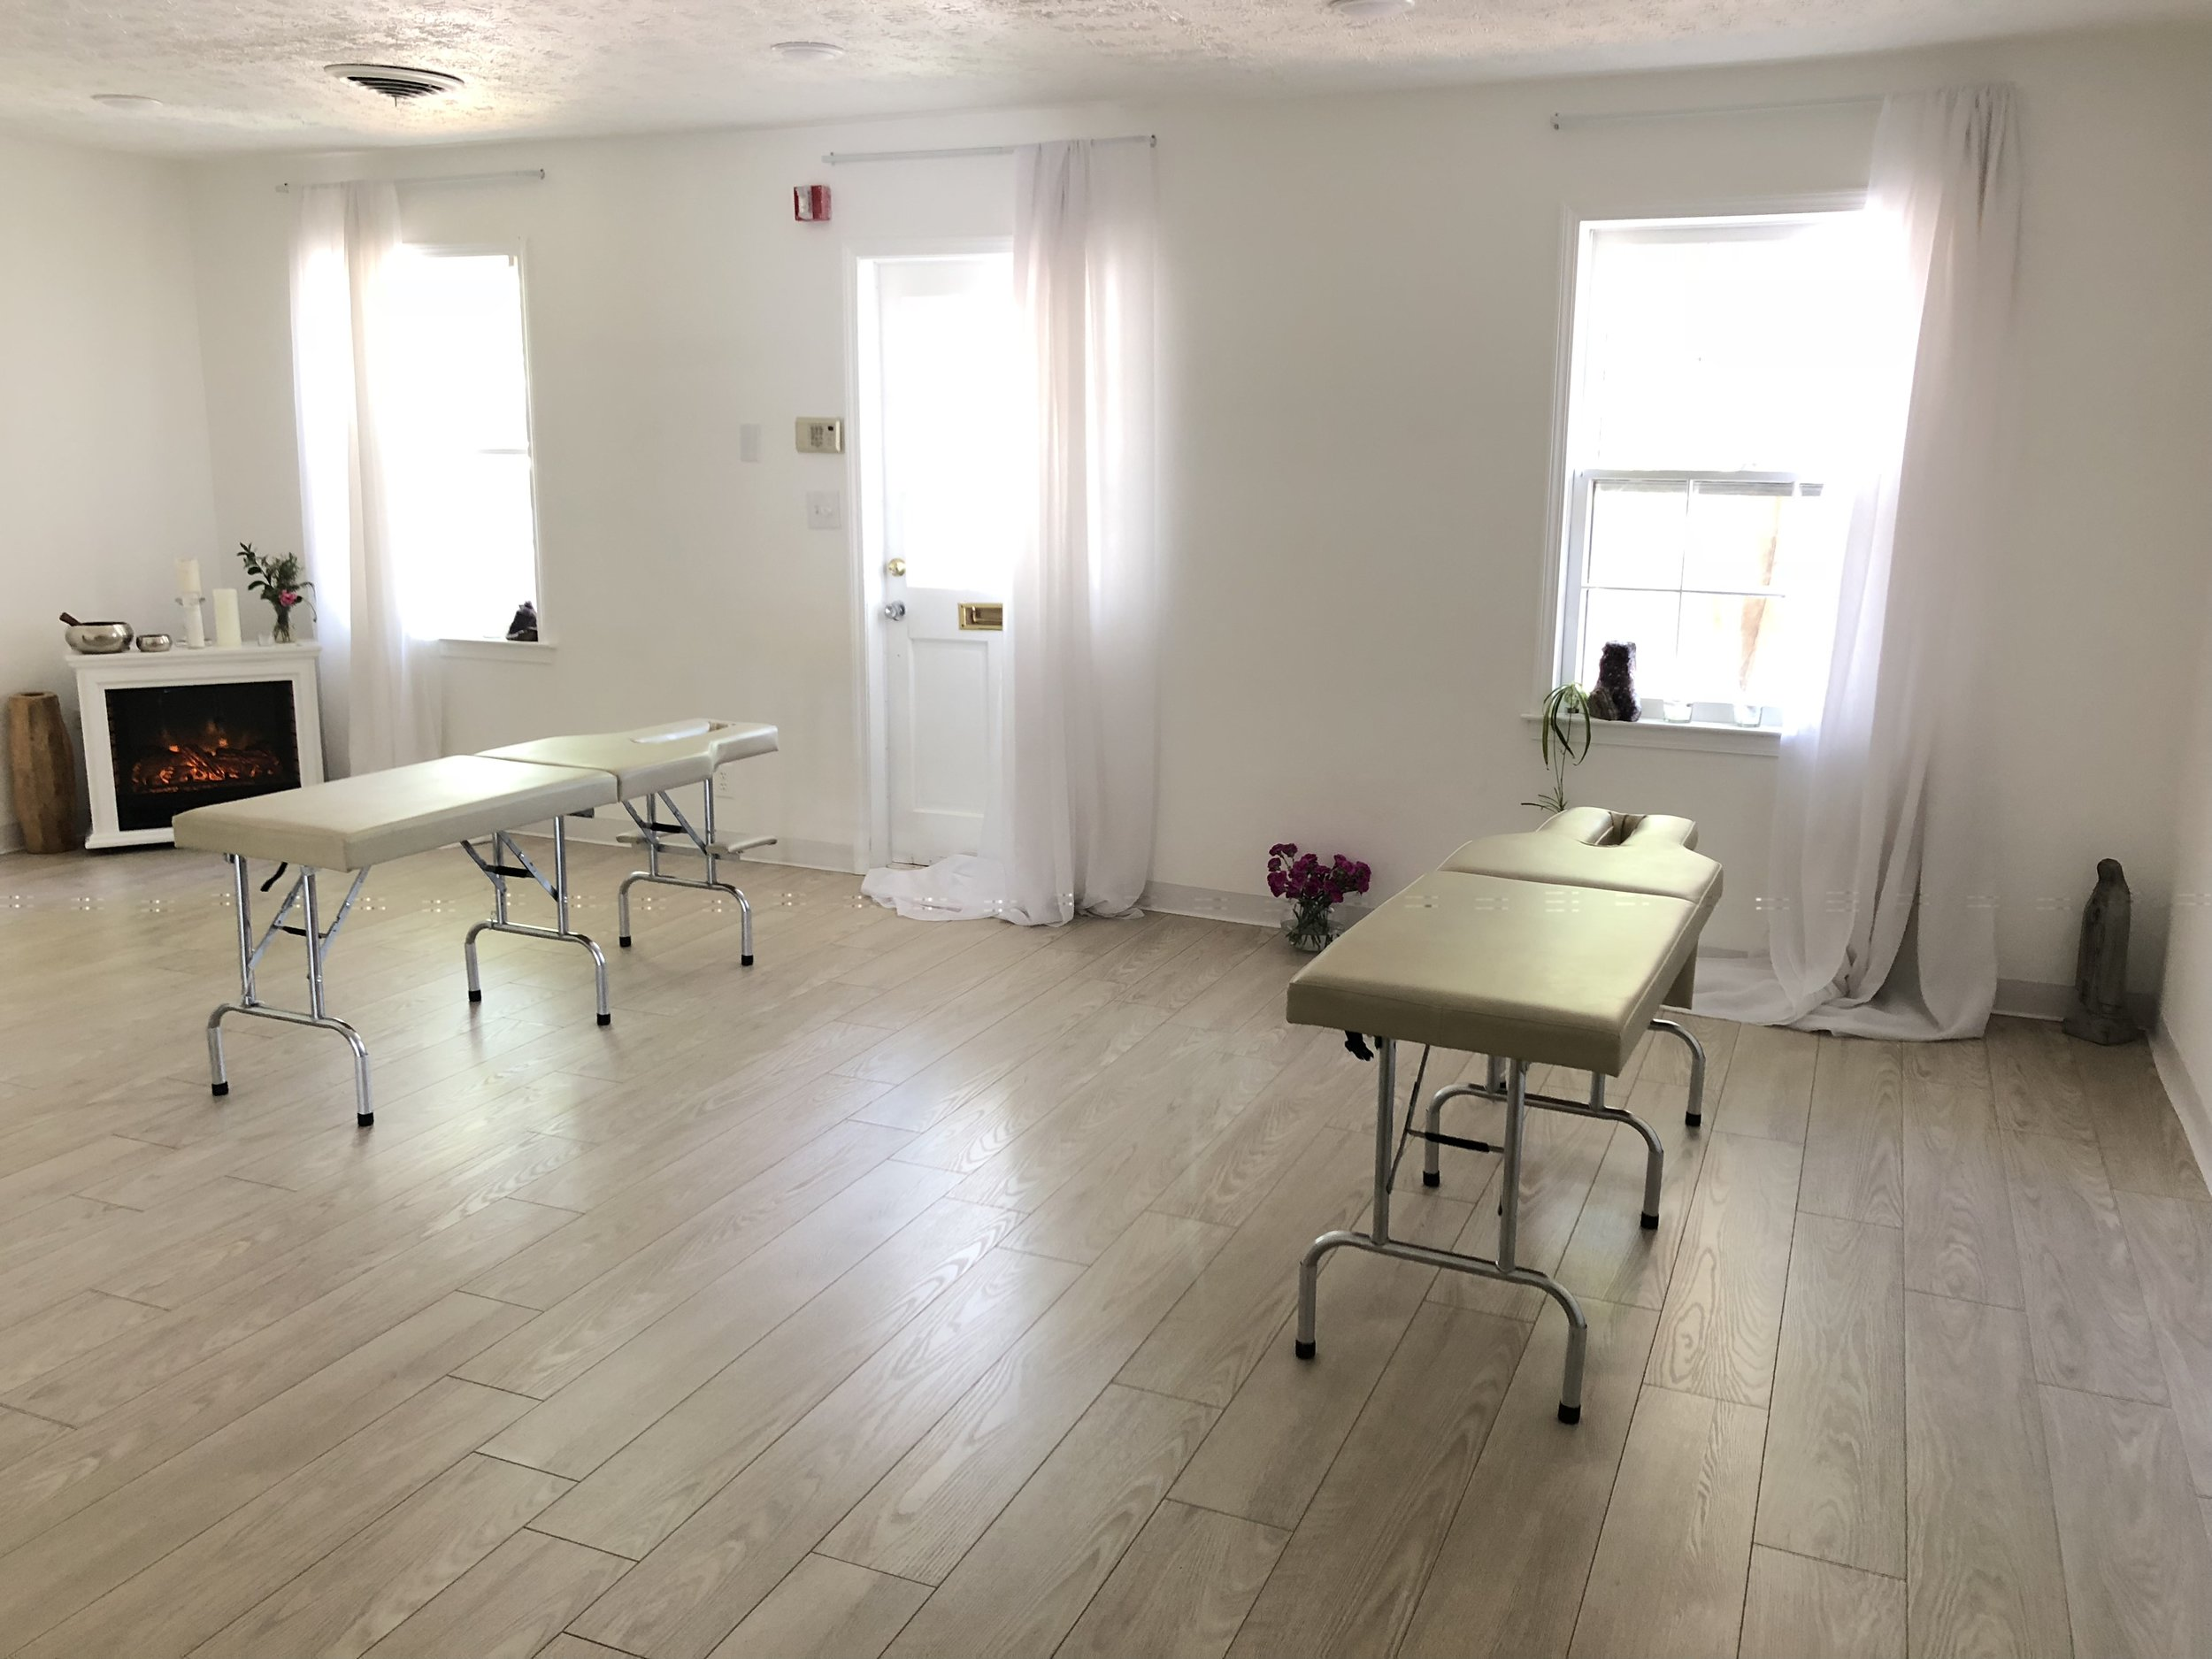 Reorganizational Healing Chiropractic Care in Roswell Dr. Georgia Sacred Mother Healing Center